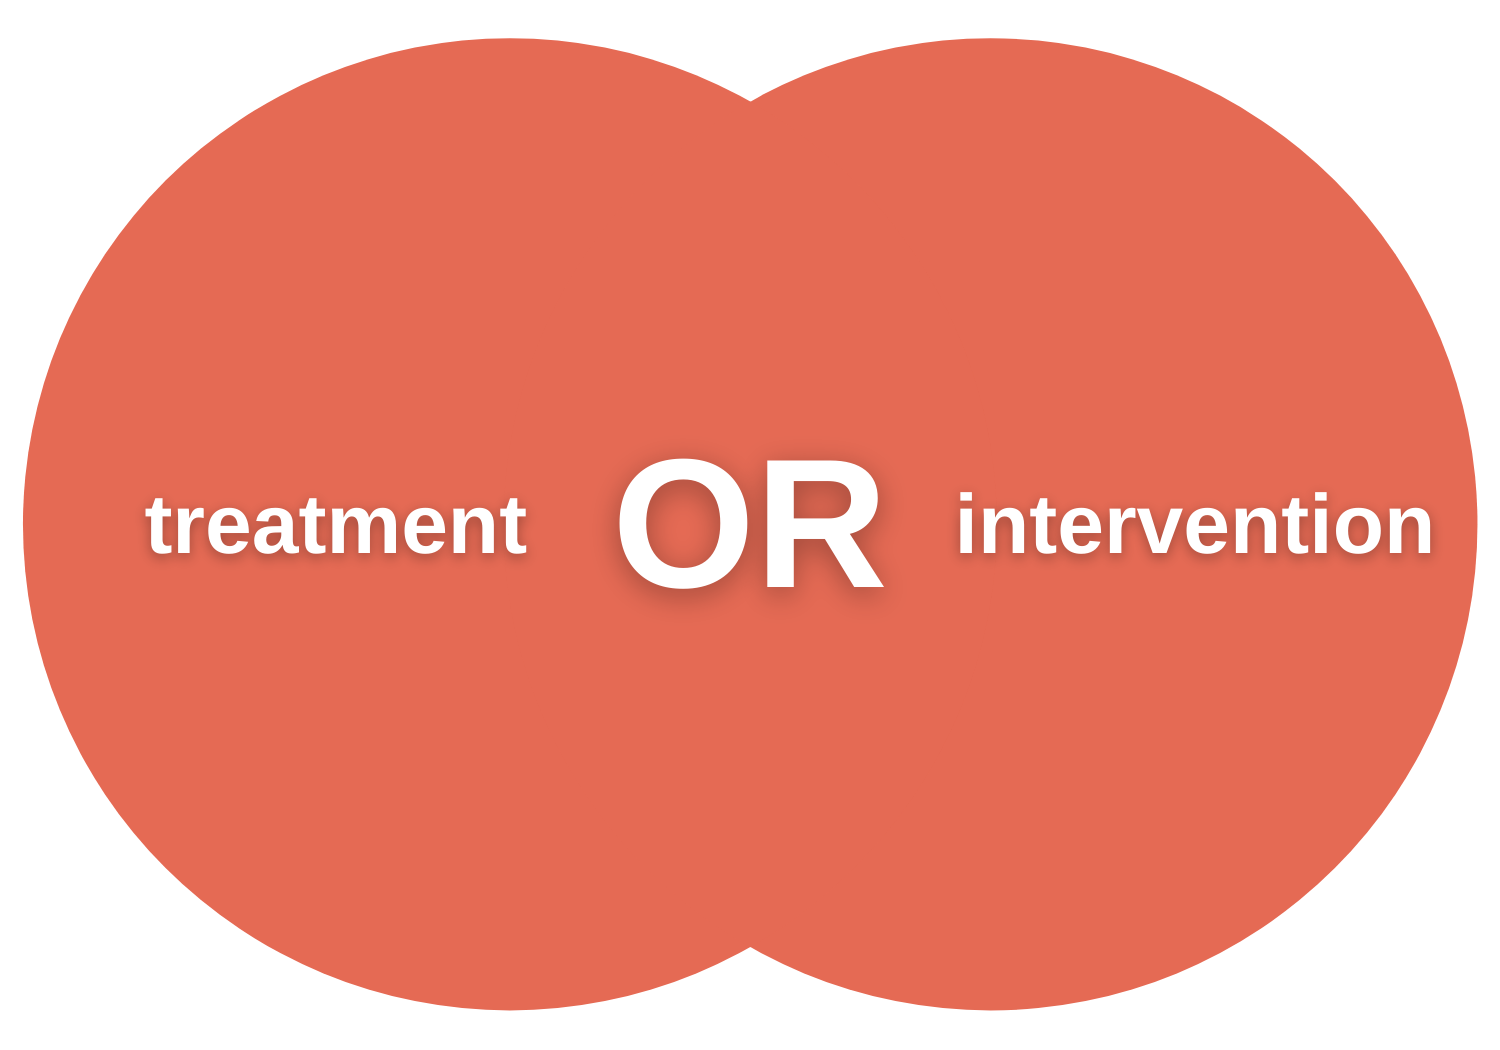 venn diagram with treatment the left side, the Boolean operator OR in the middle, and intervention on the right side